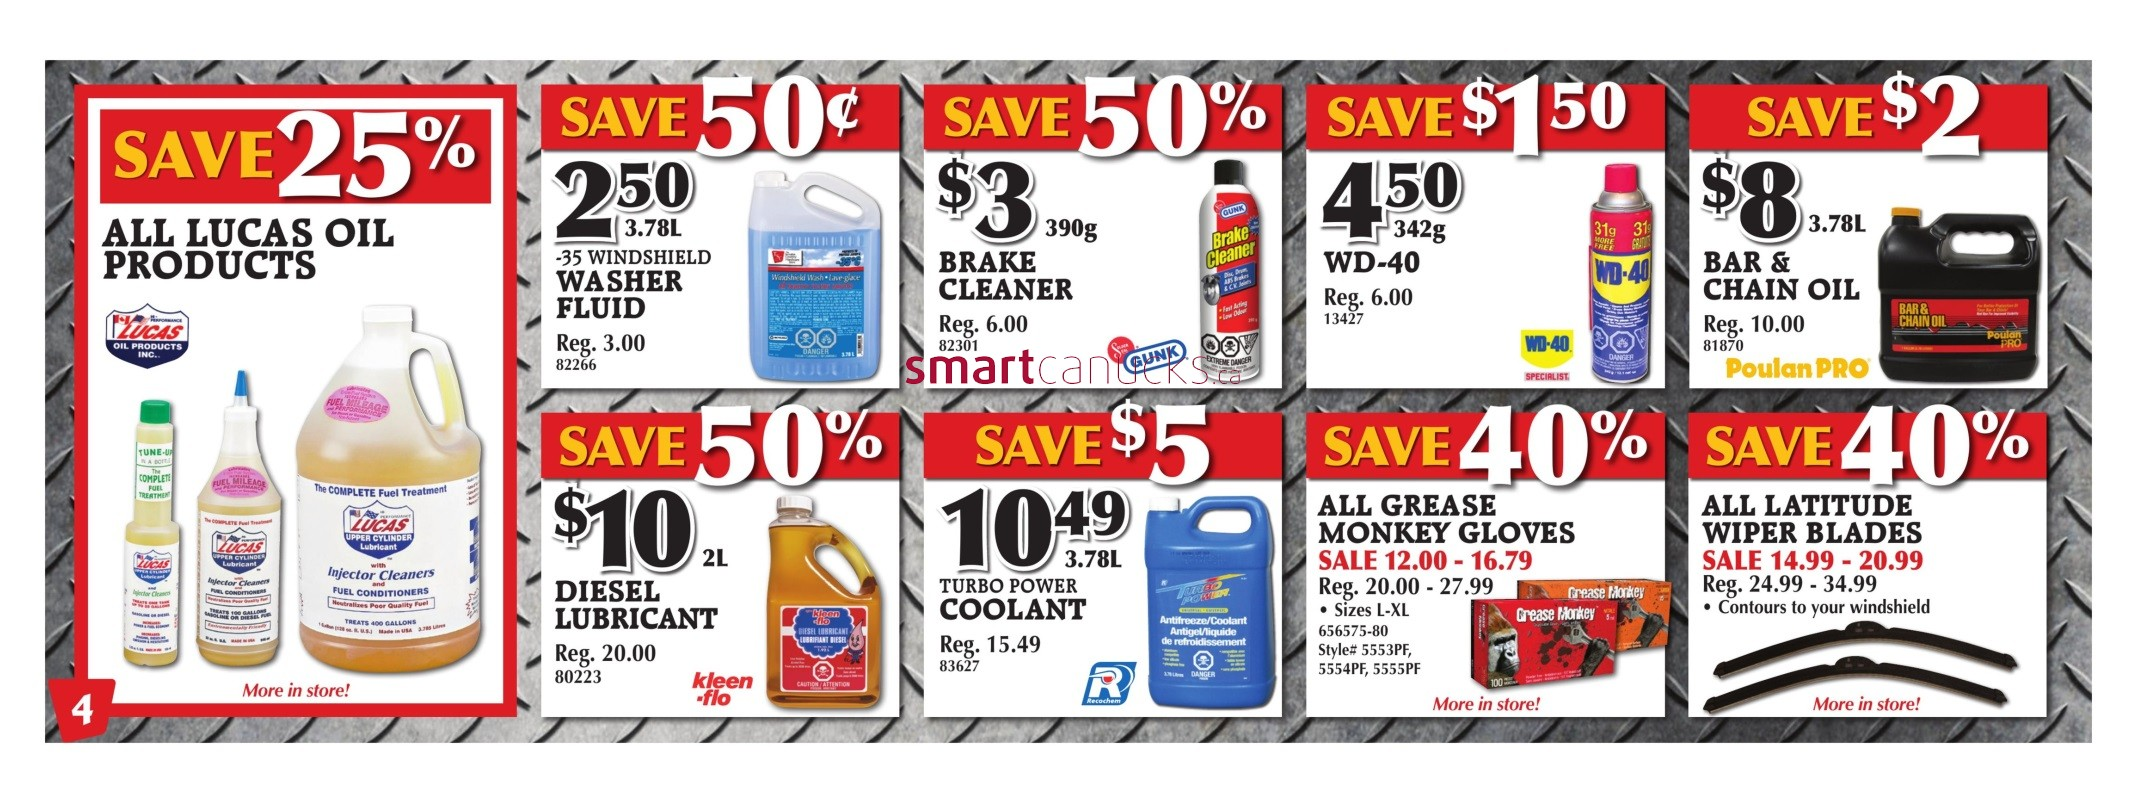 Tsc coupons canada - Six 02 coupons